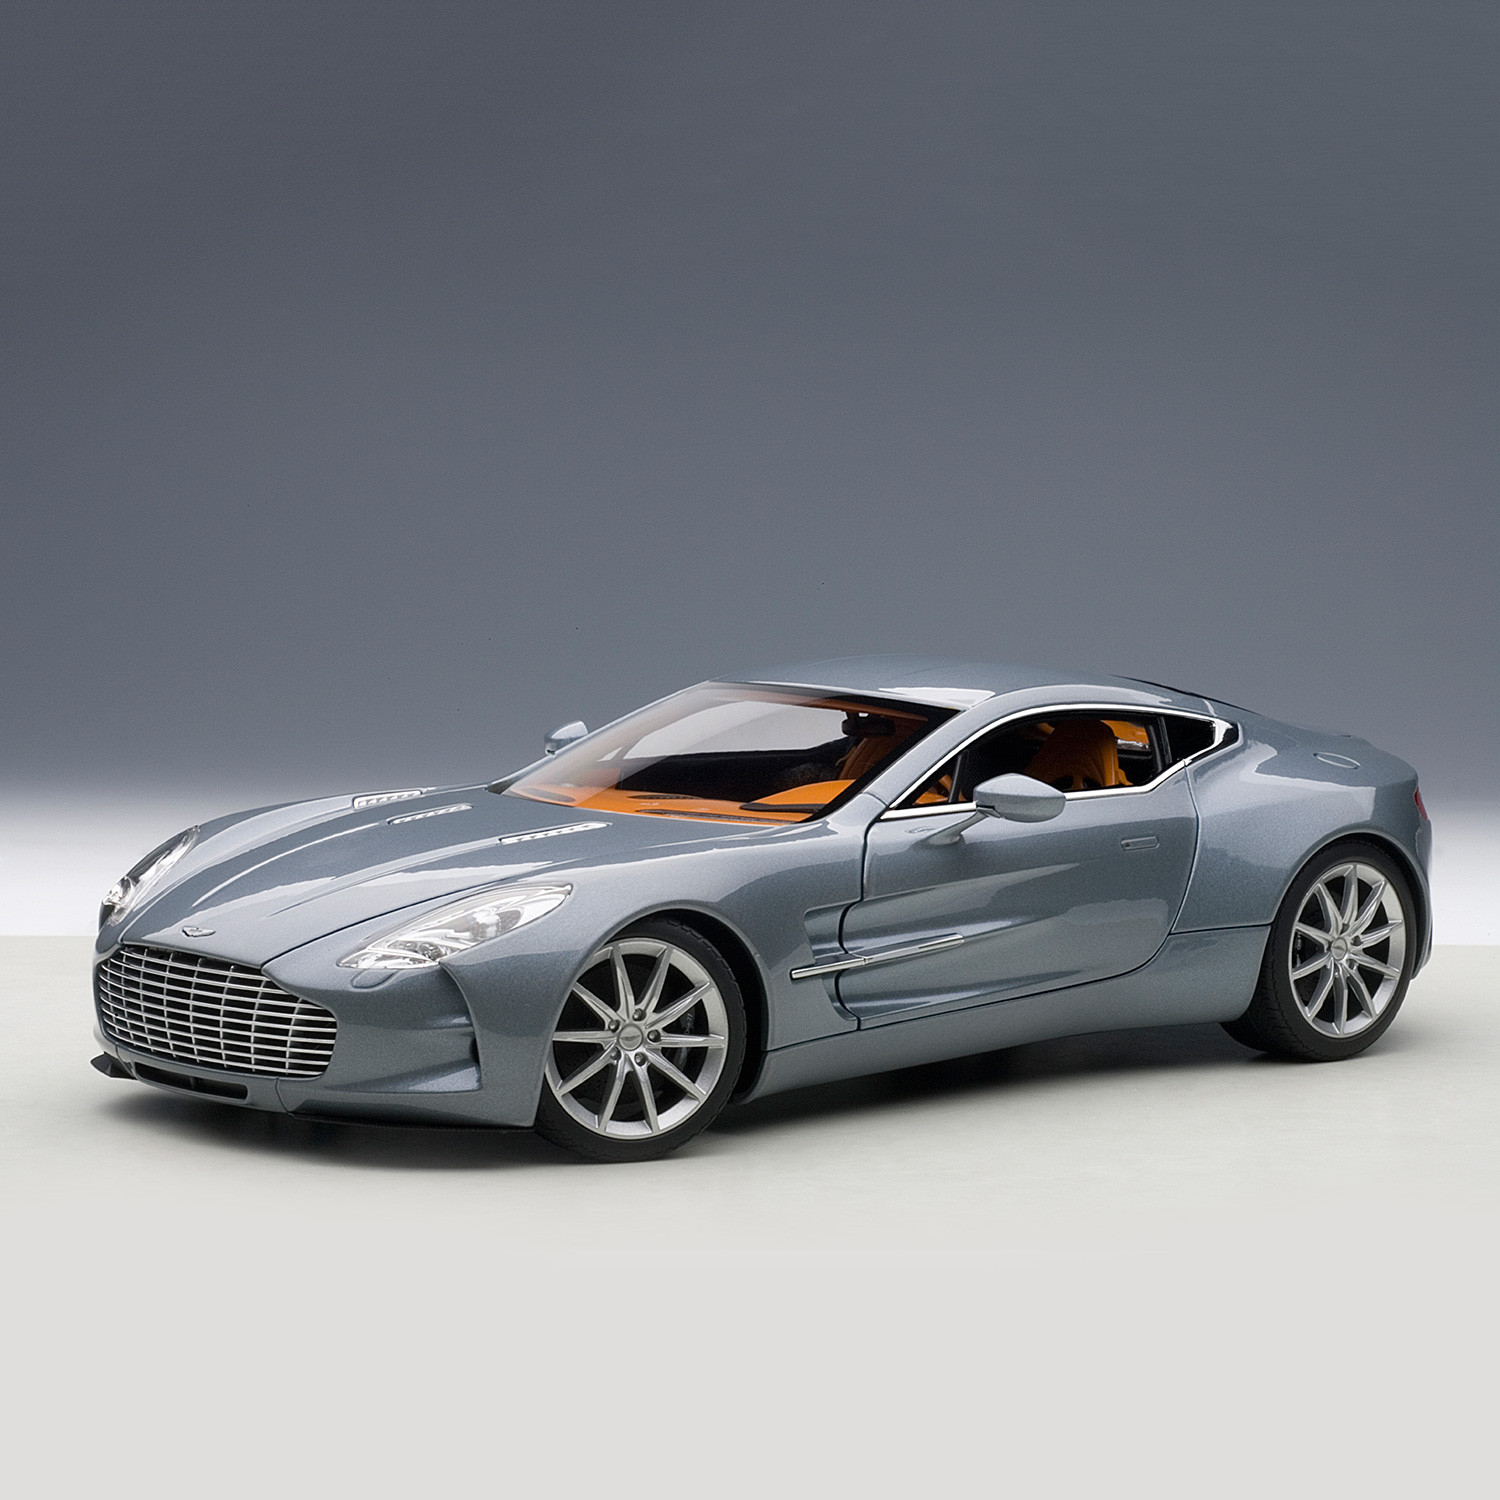 aston martin one 77 auto art touch of modern. Black Bedroom Furniture Sets. Home Design Ideas